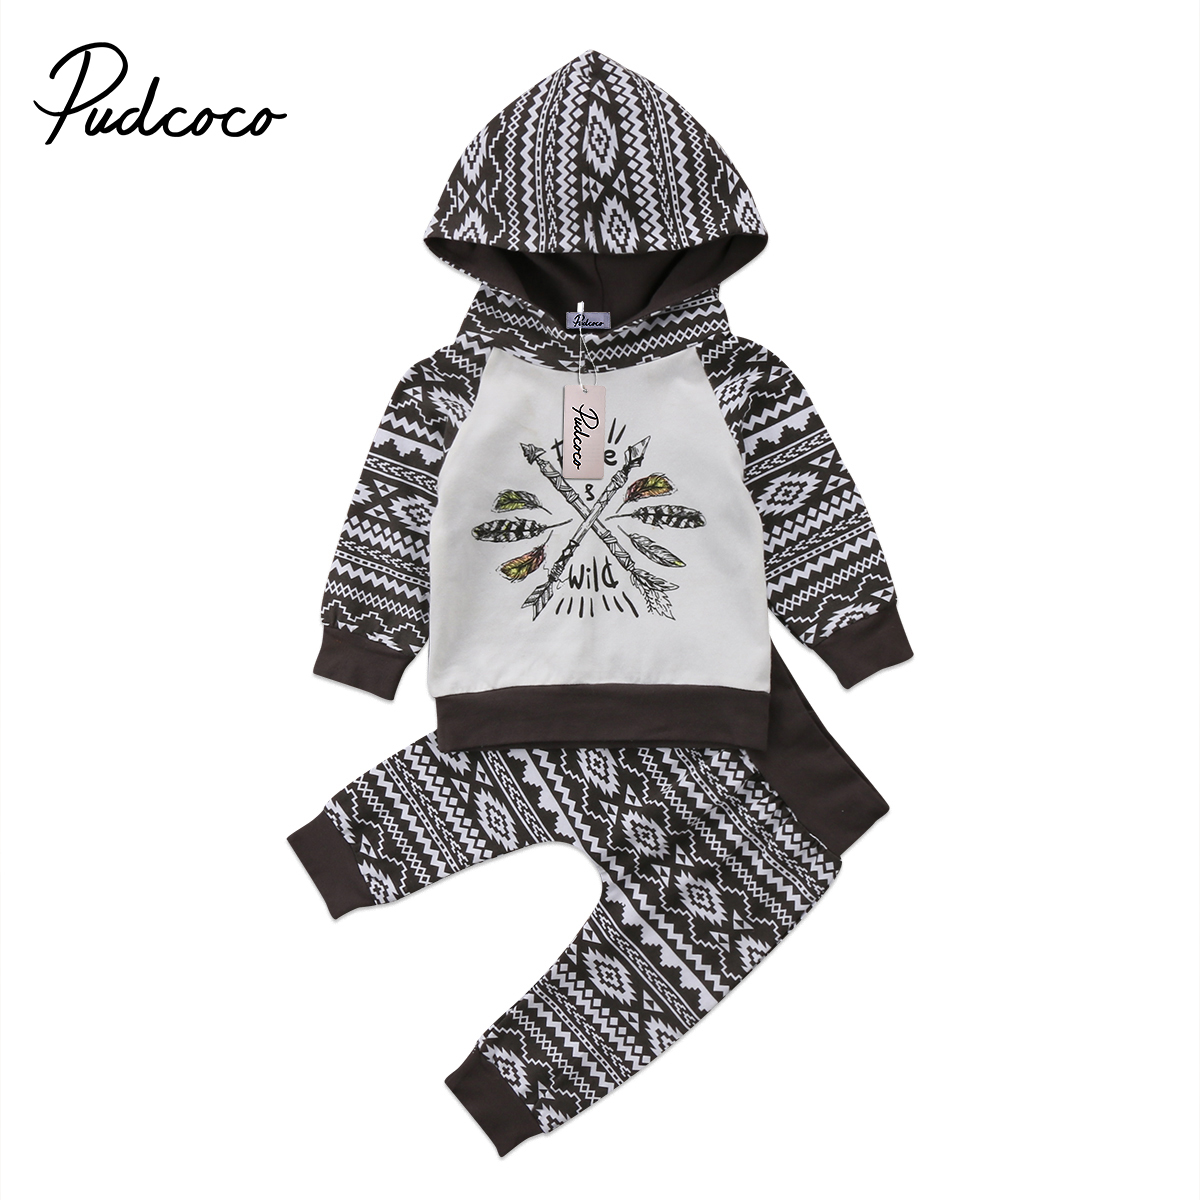 2018 Brand New Toddler Newborn Infant Baby Boy Hooded Shirt Tops Pants Outfits Clothes 2PCS Sets Casual Clothes Tribe Outfits newborn kids baby boy summer clothes set t shirt tops pants outfits boys sets 2pcs 0 3y camouflage